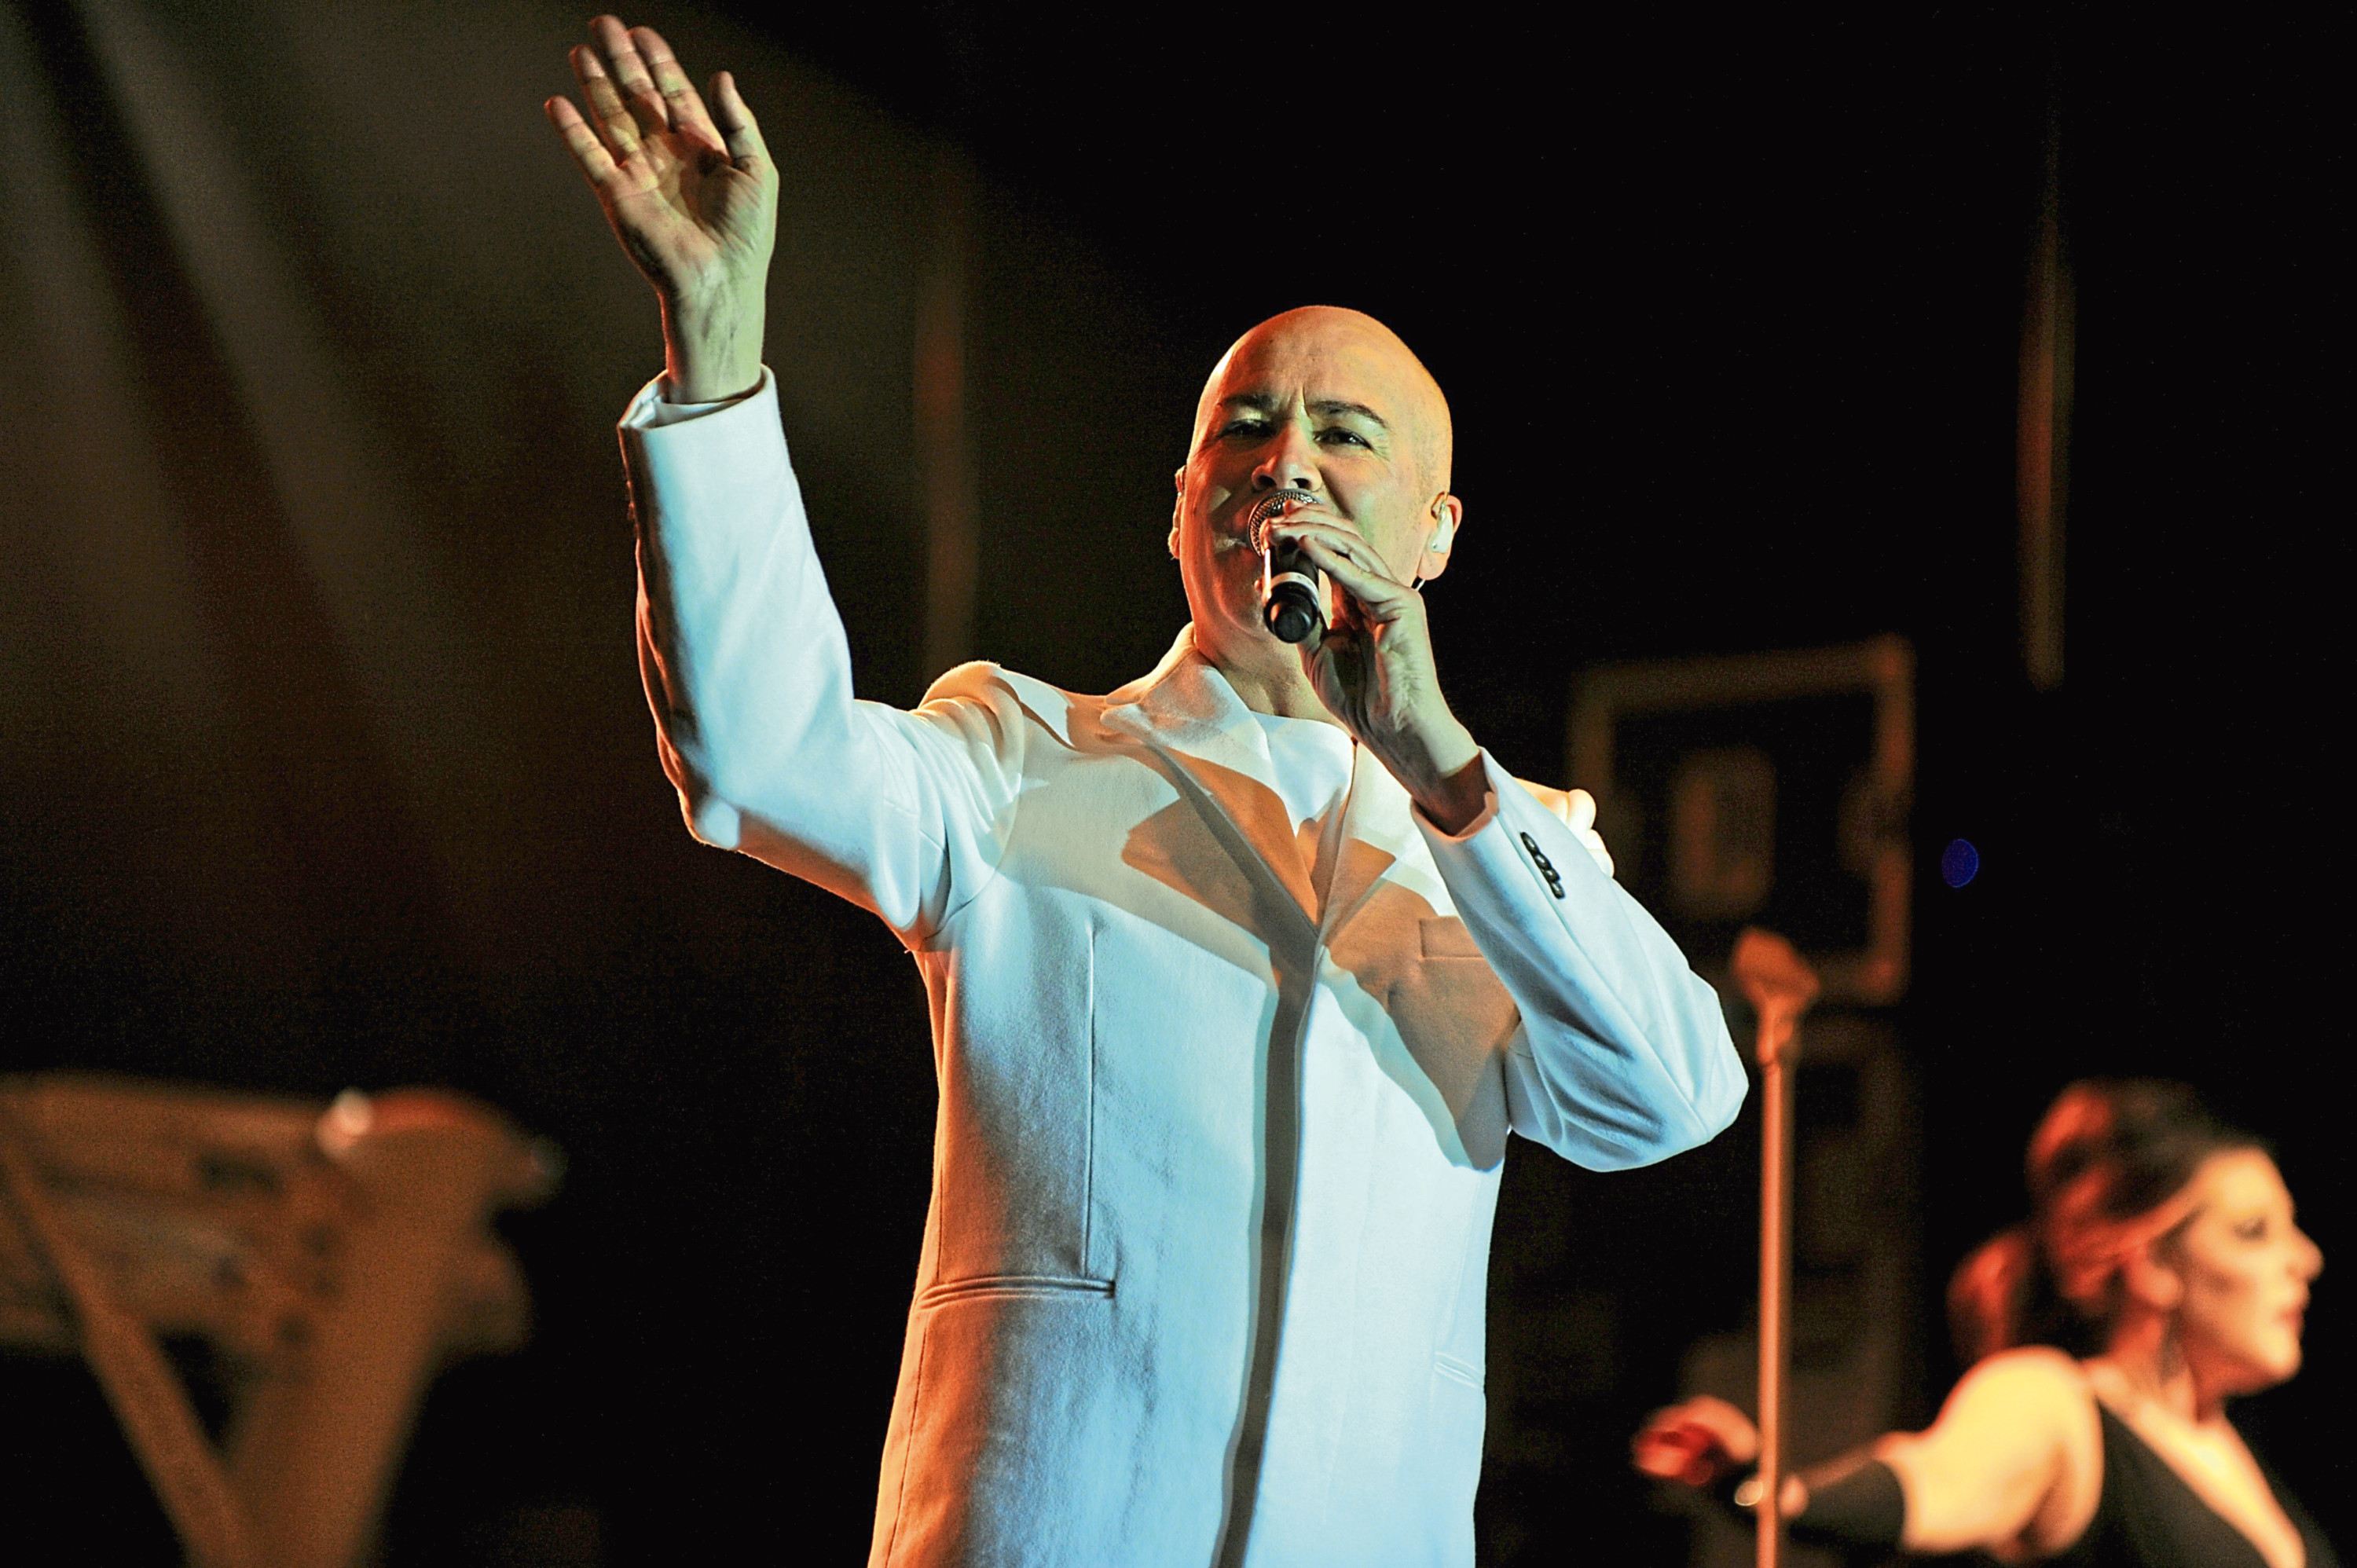 The Human League previously performed at a gig in the town